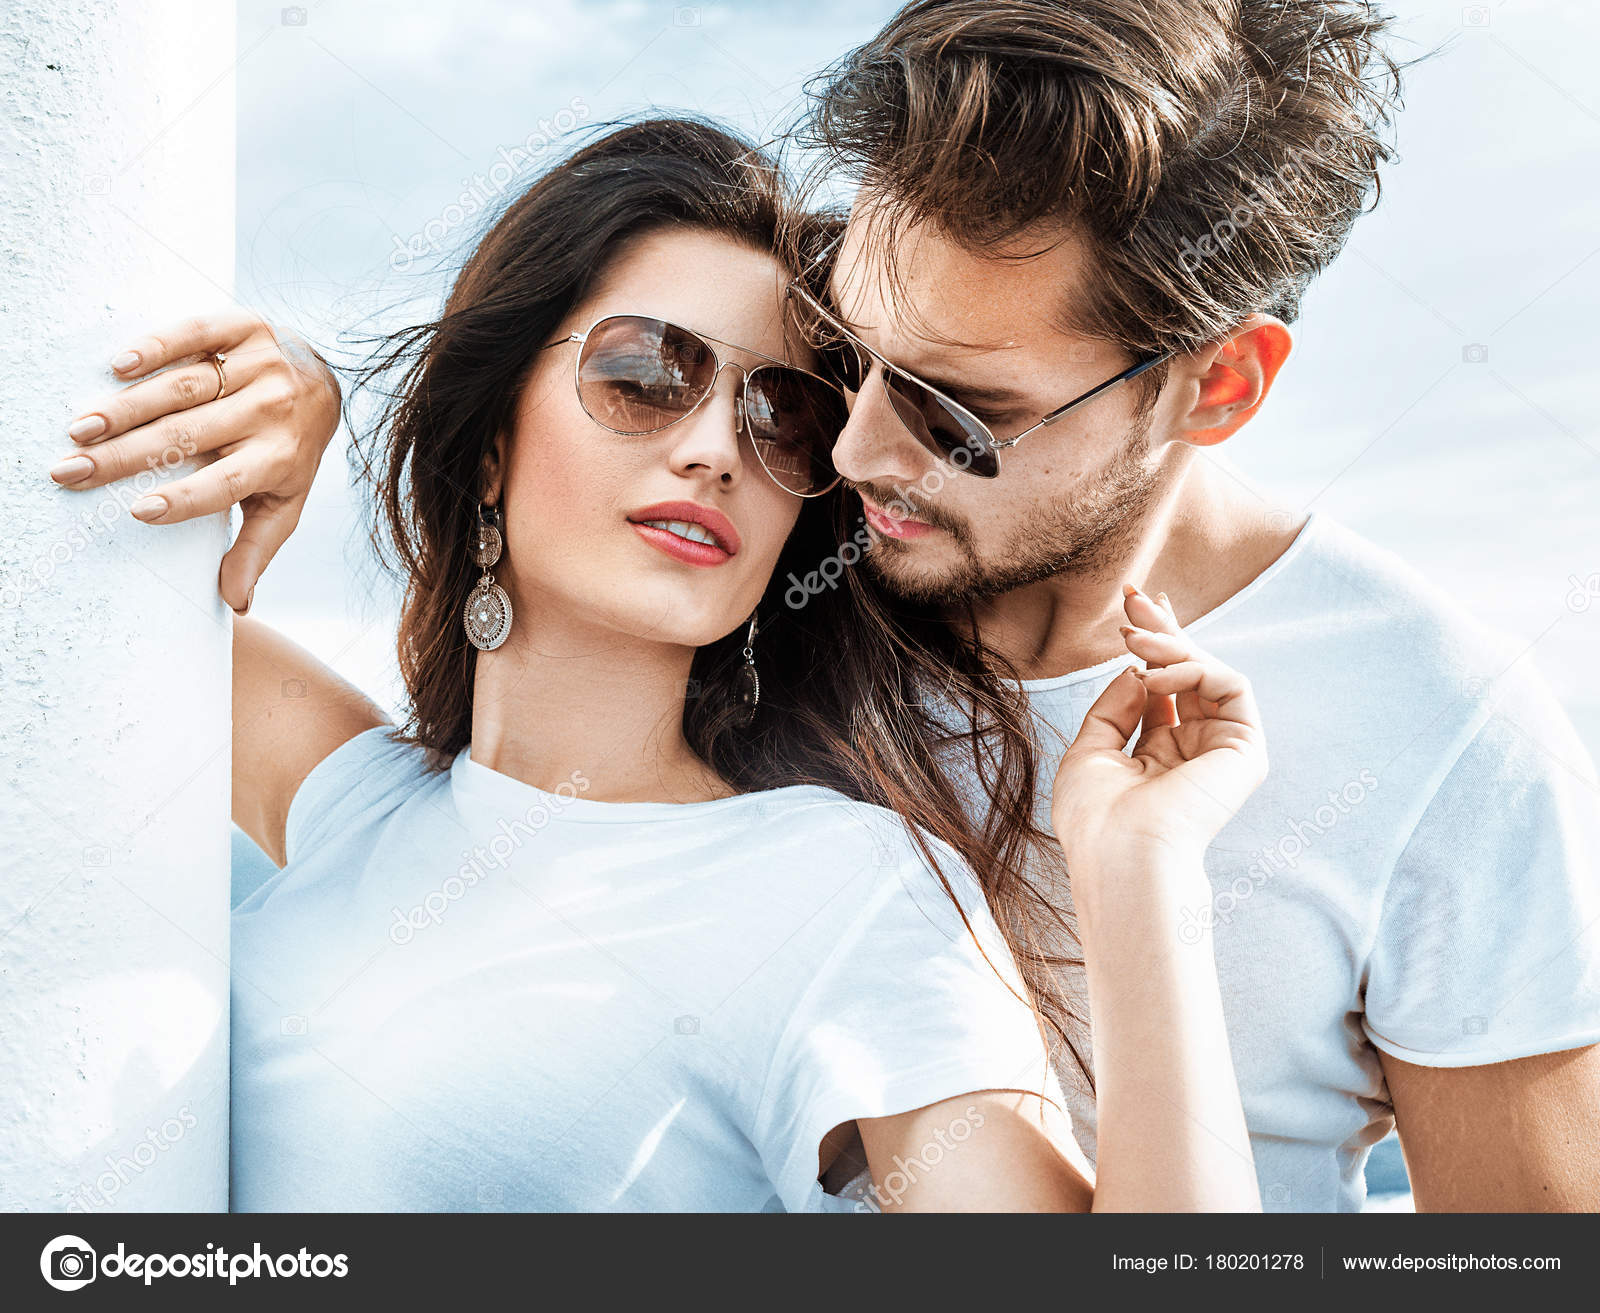 ᐈ Romantic Couples Stock Backgrounds Royalty Free Romantic Couple Images Download On Depositphotos